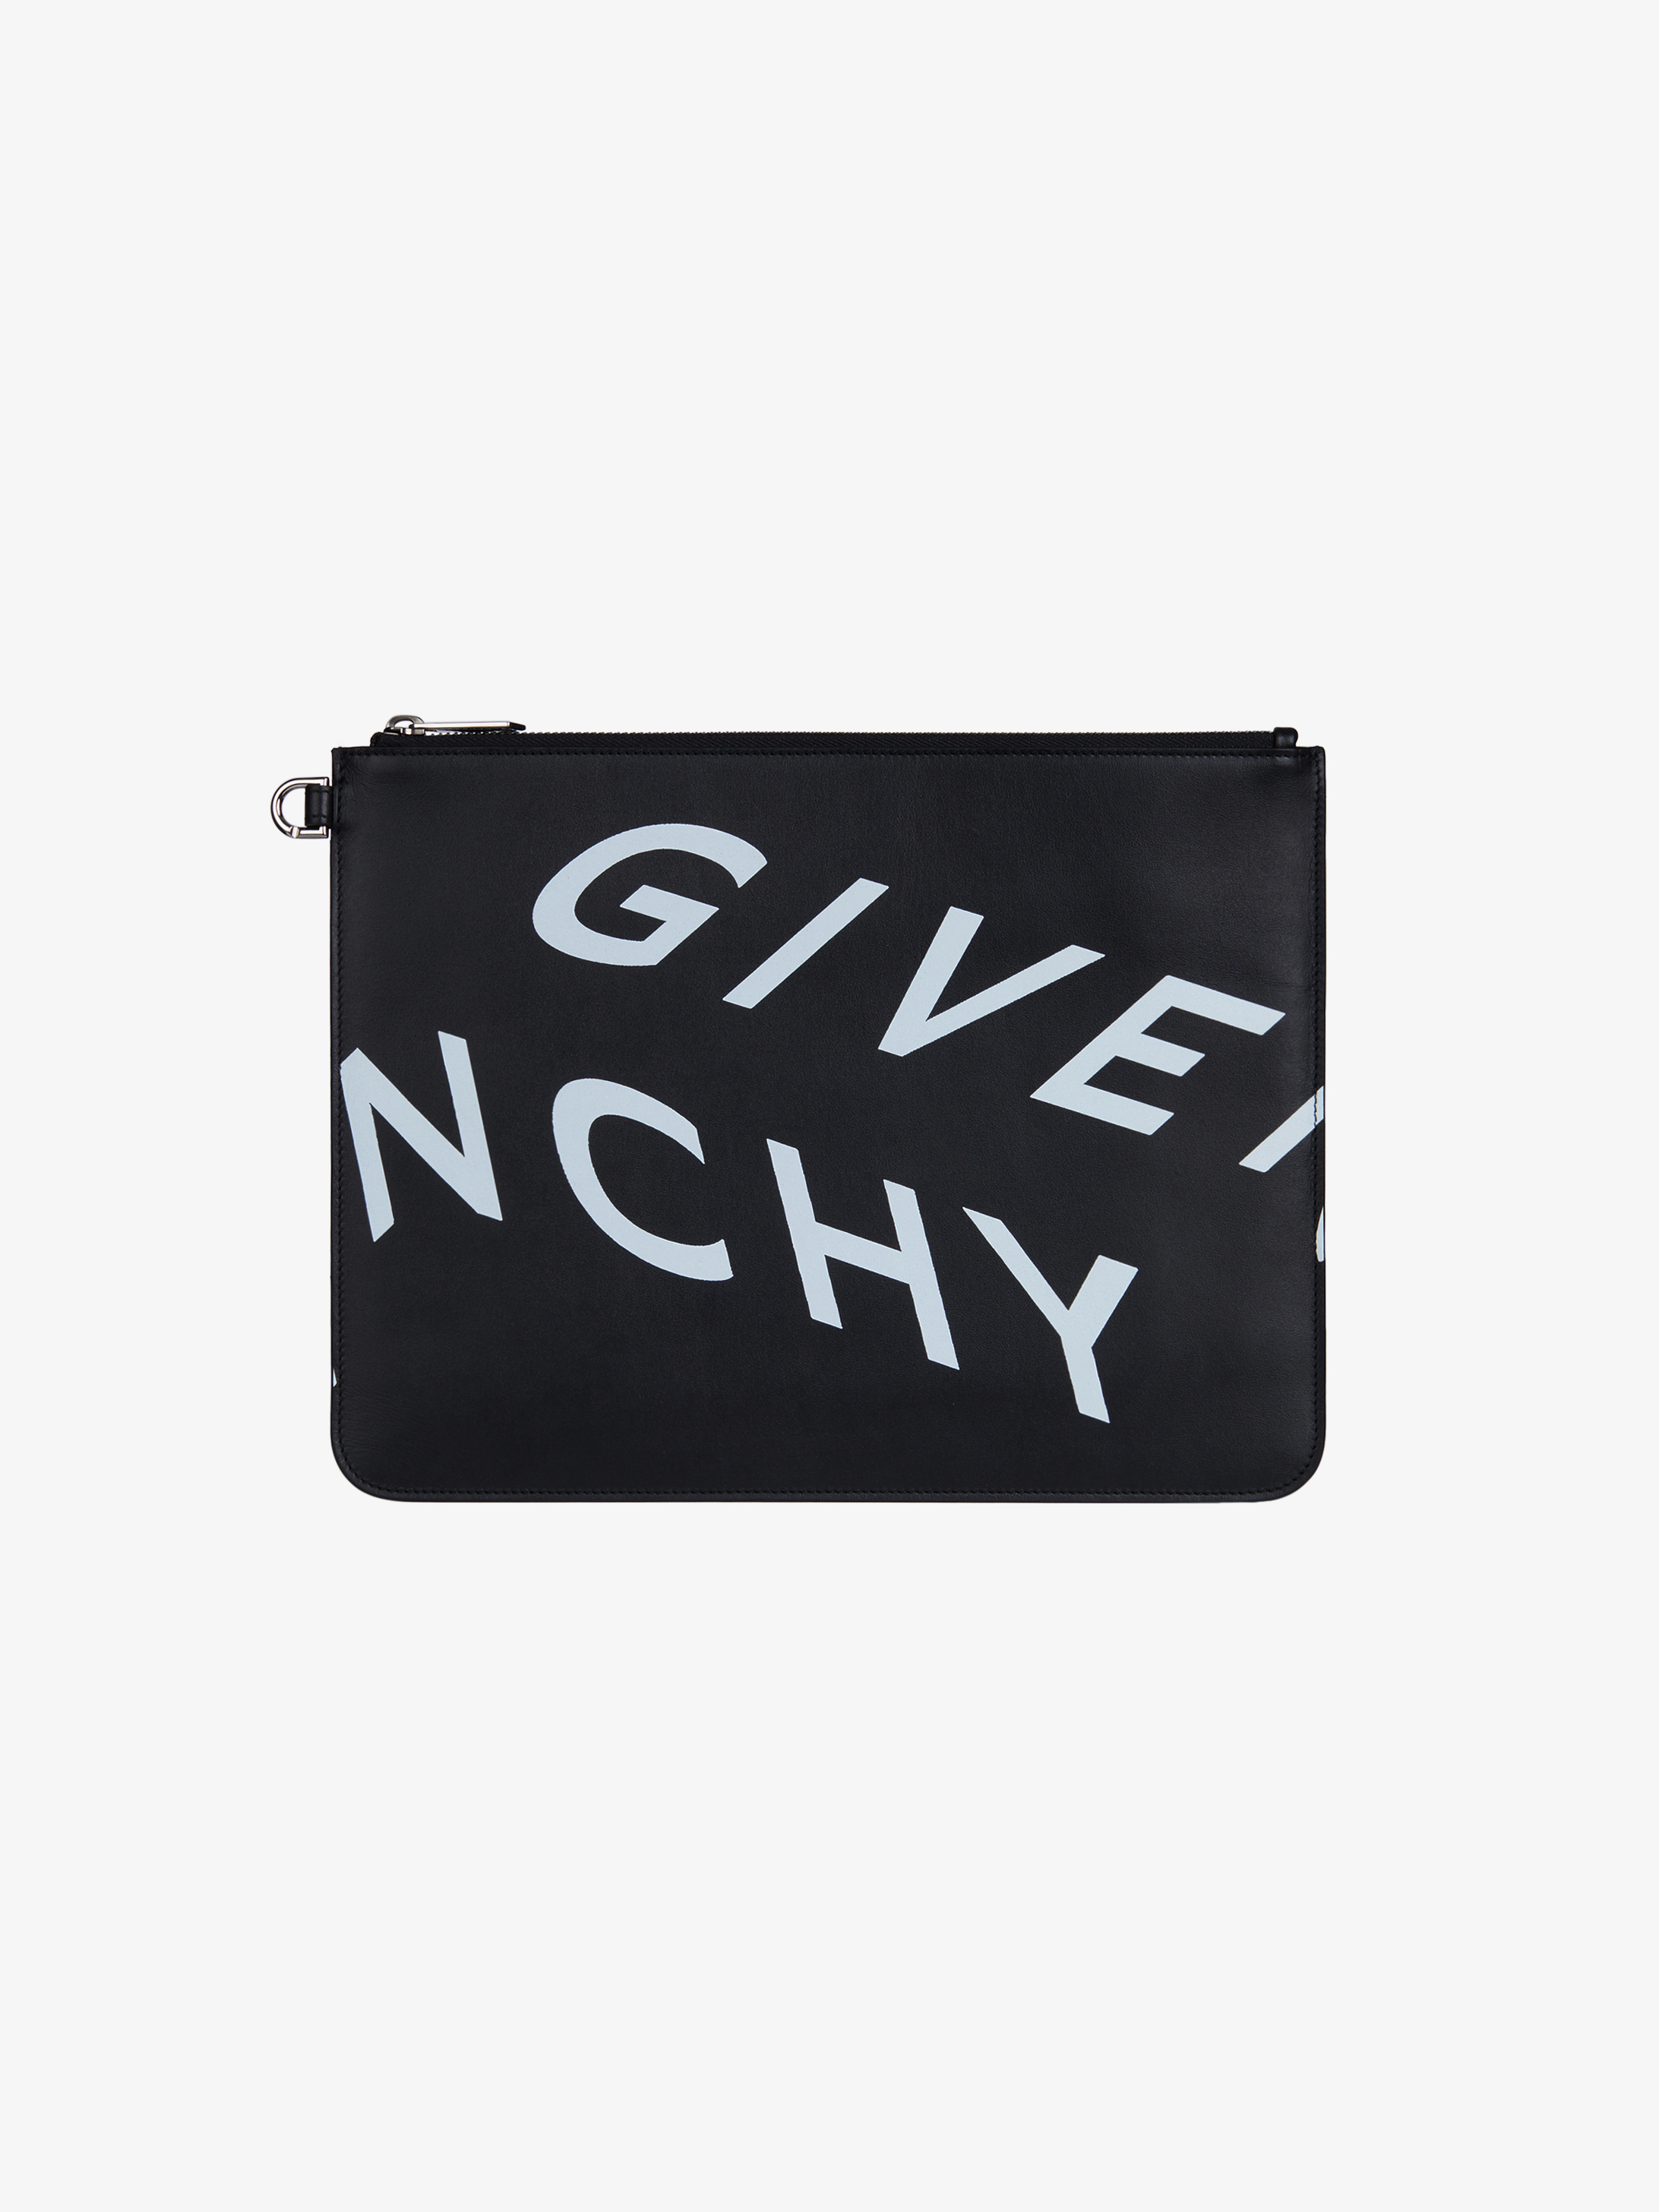 GIVENCHY Refracted large zipped pouch in leather